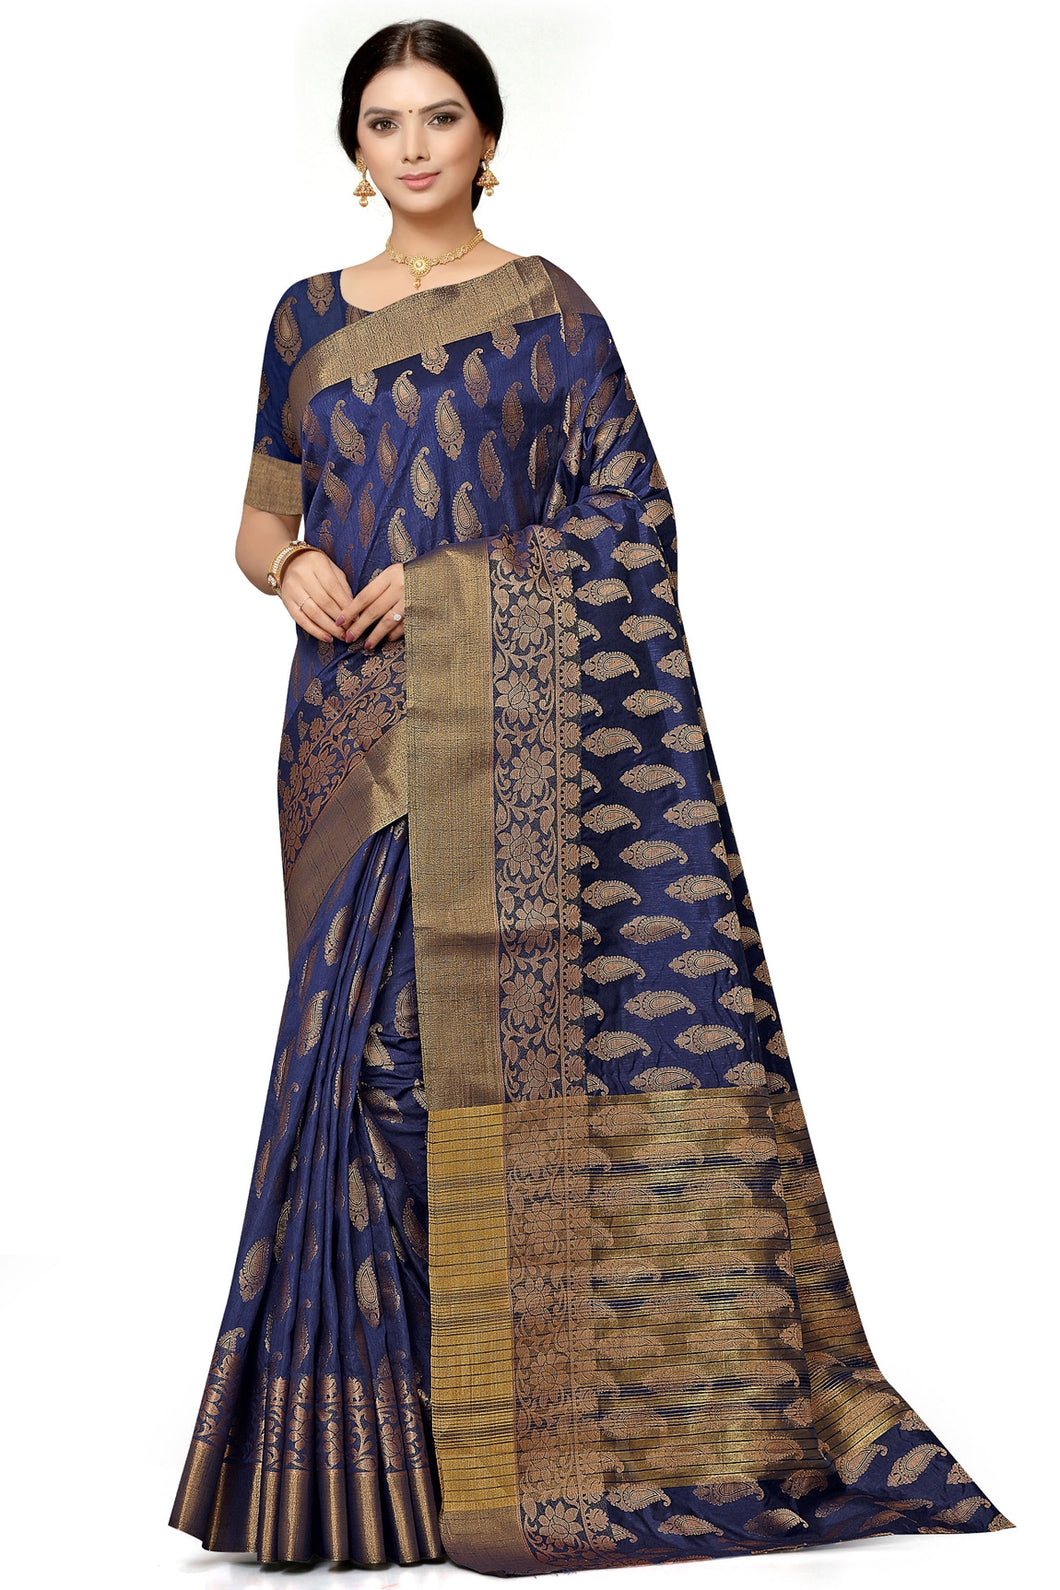 Bhelpuri Navy Blue Poly Dupion  Weaving With Jacquard Work Saree with Blouse Piece